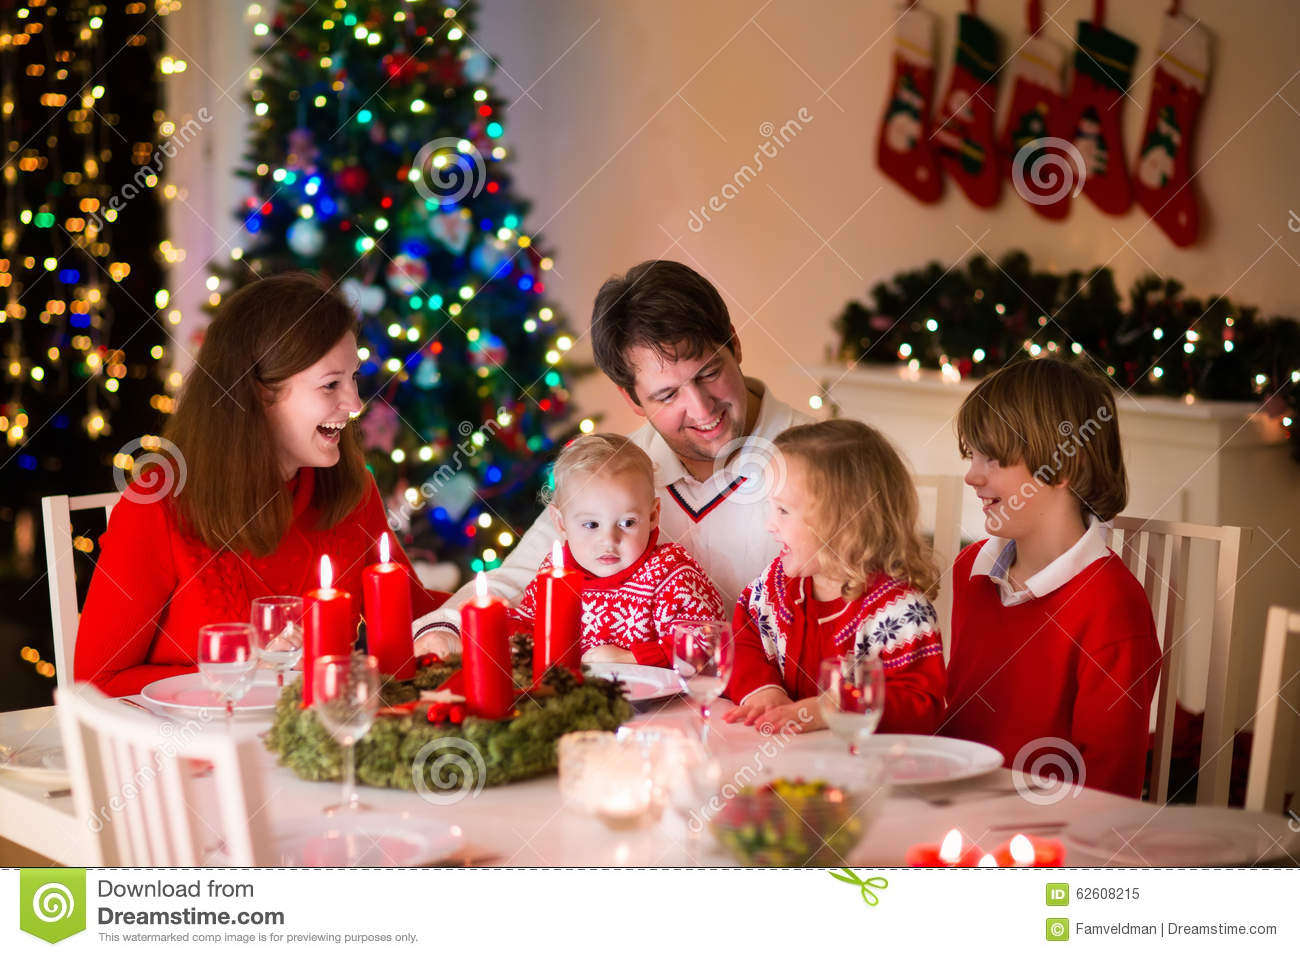 Family With Children At Christmas Dinner At Home Stock Image - Image ...